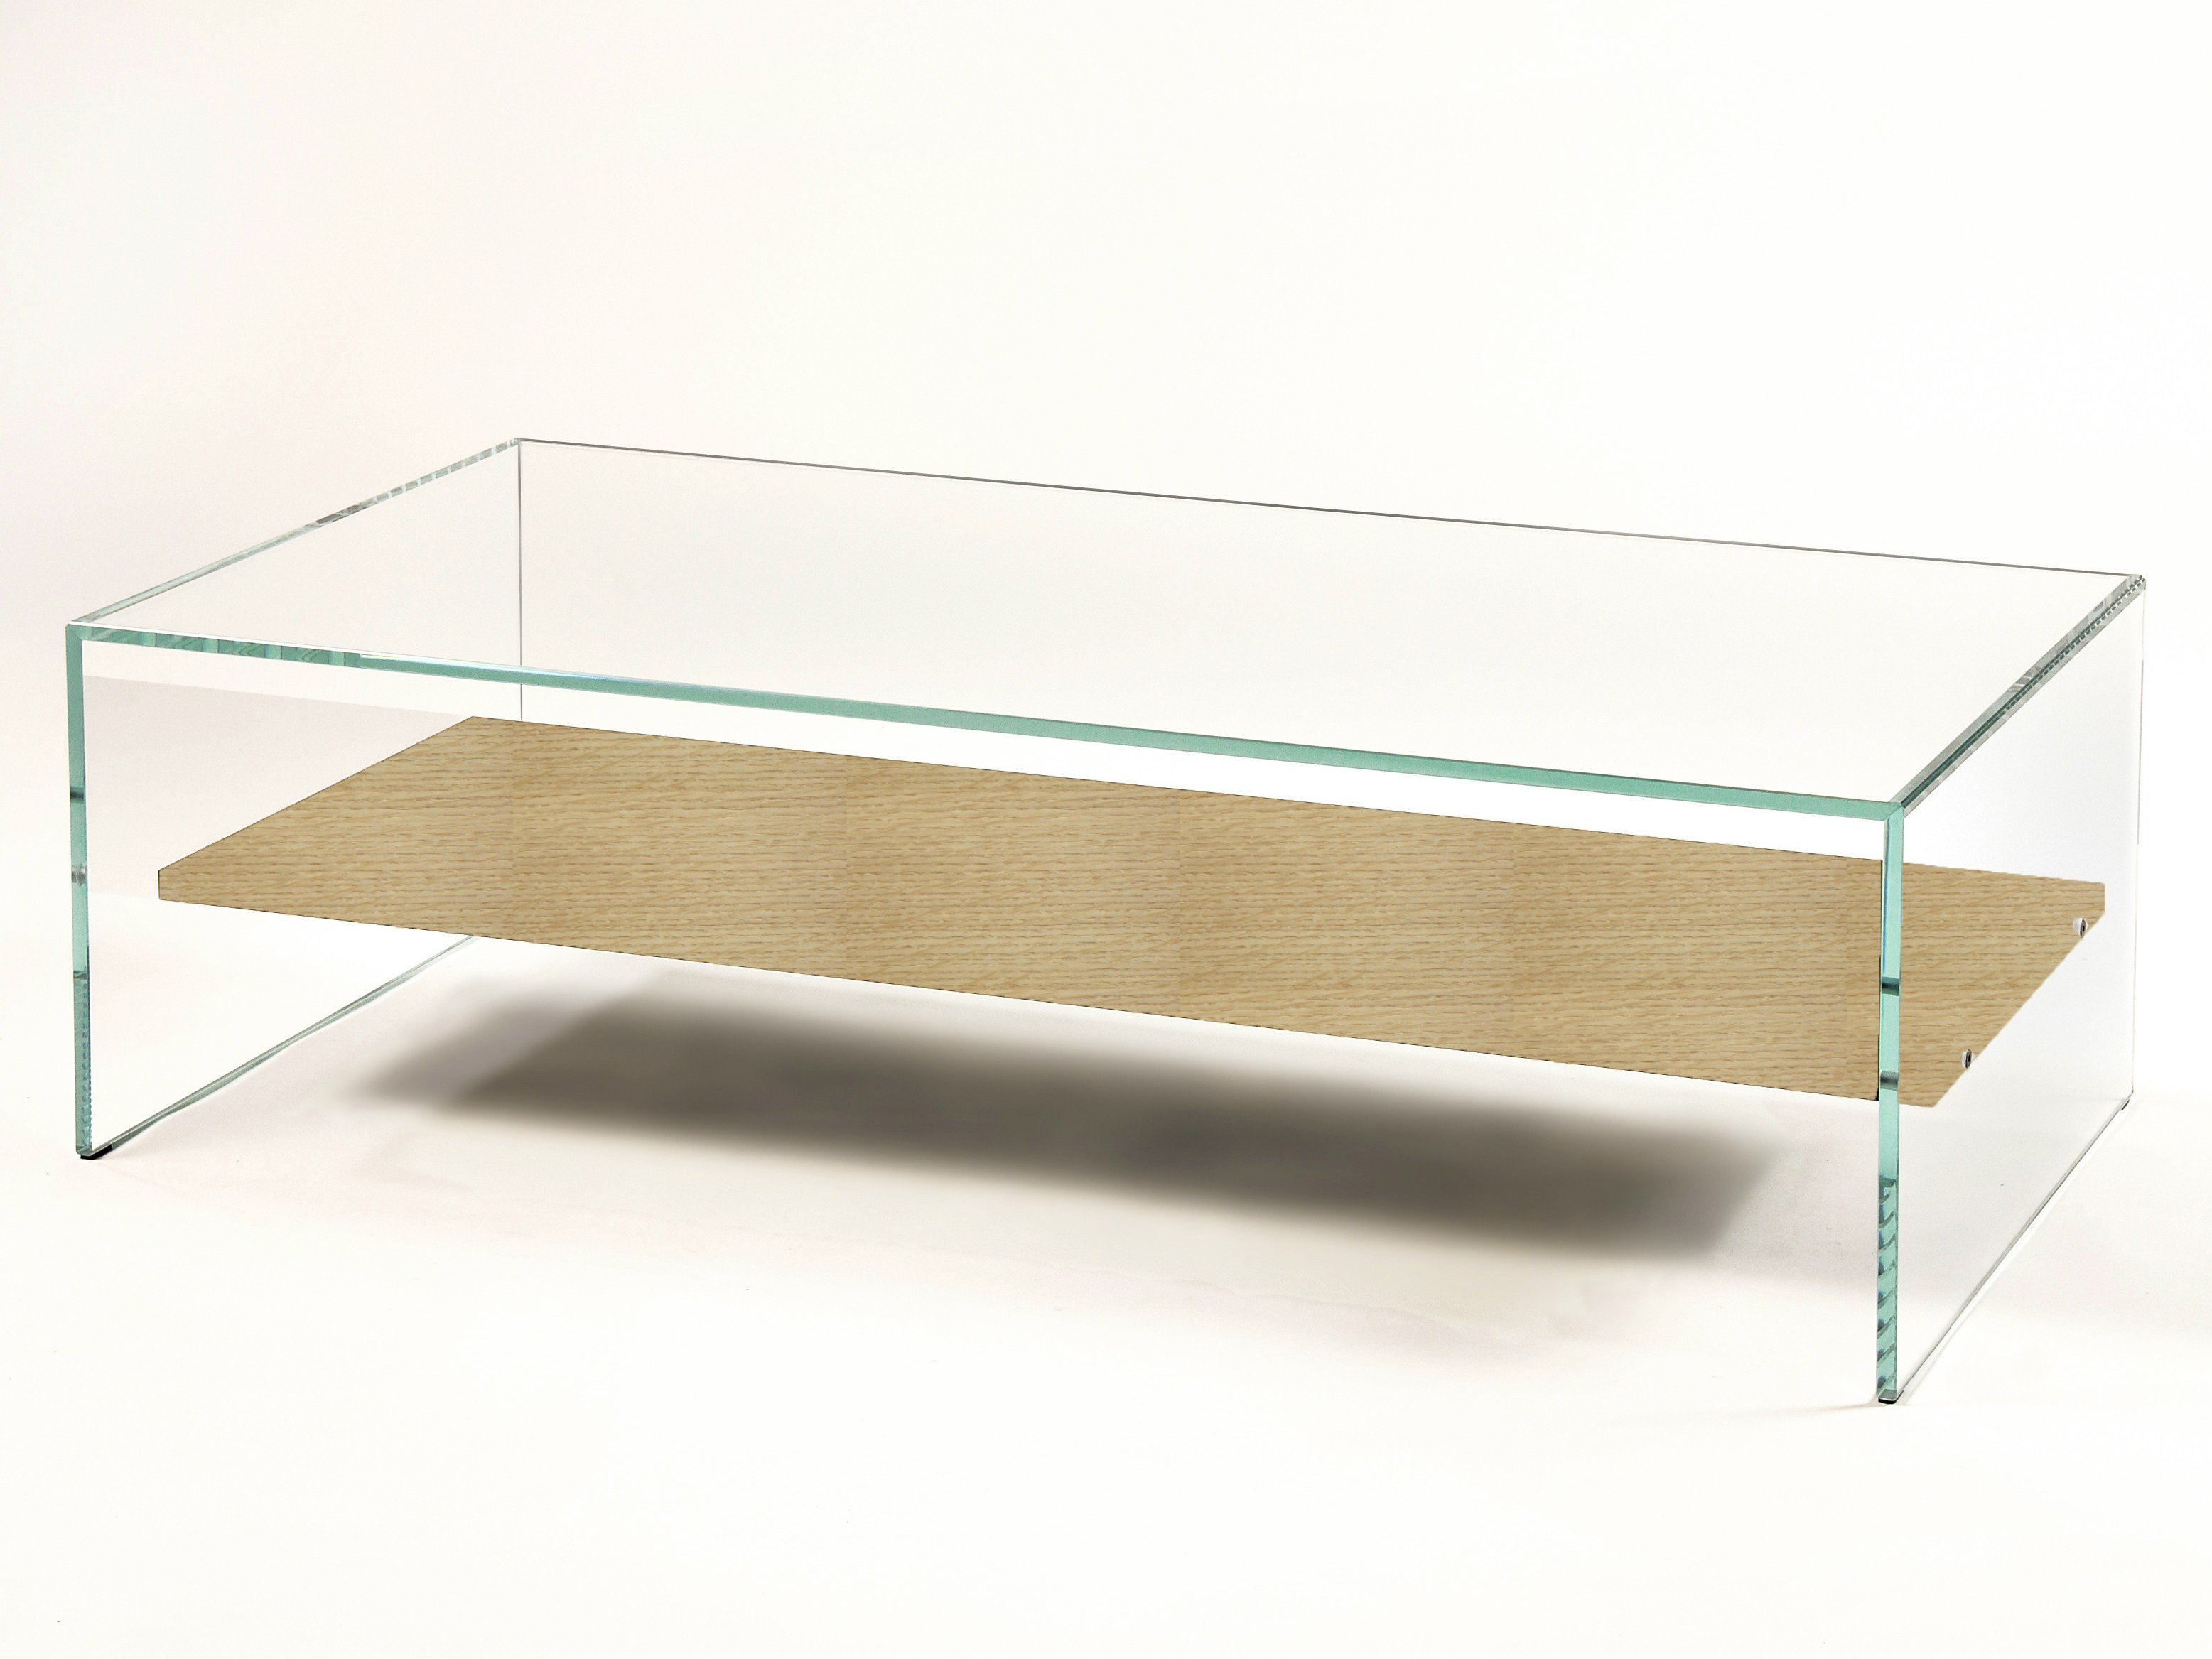 Table basse avec plateau bois verre tremp extra clair transparence zen 1 - Customiser table en verre ...